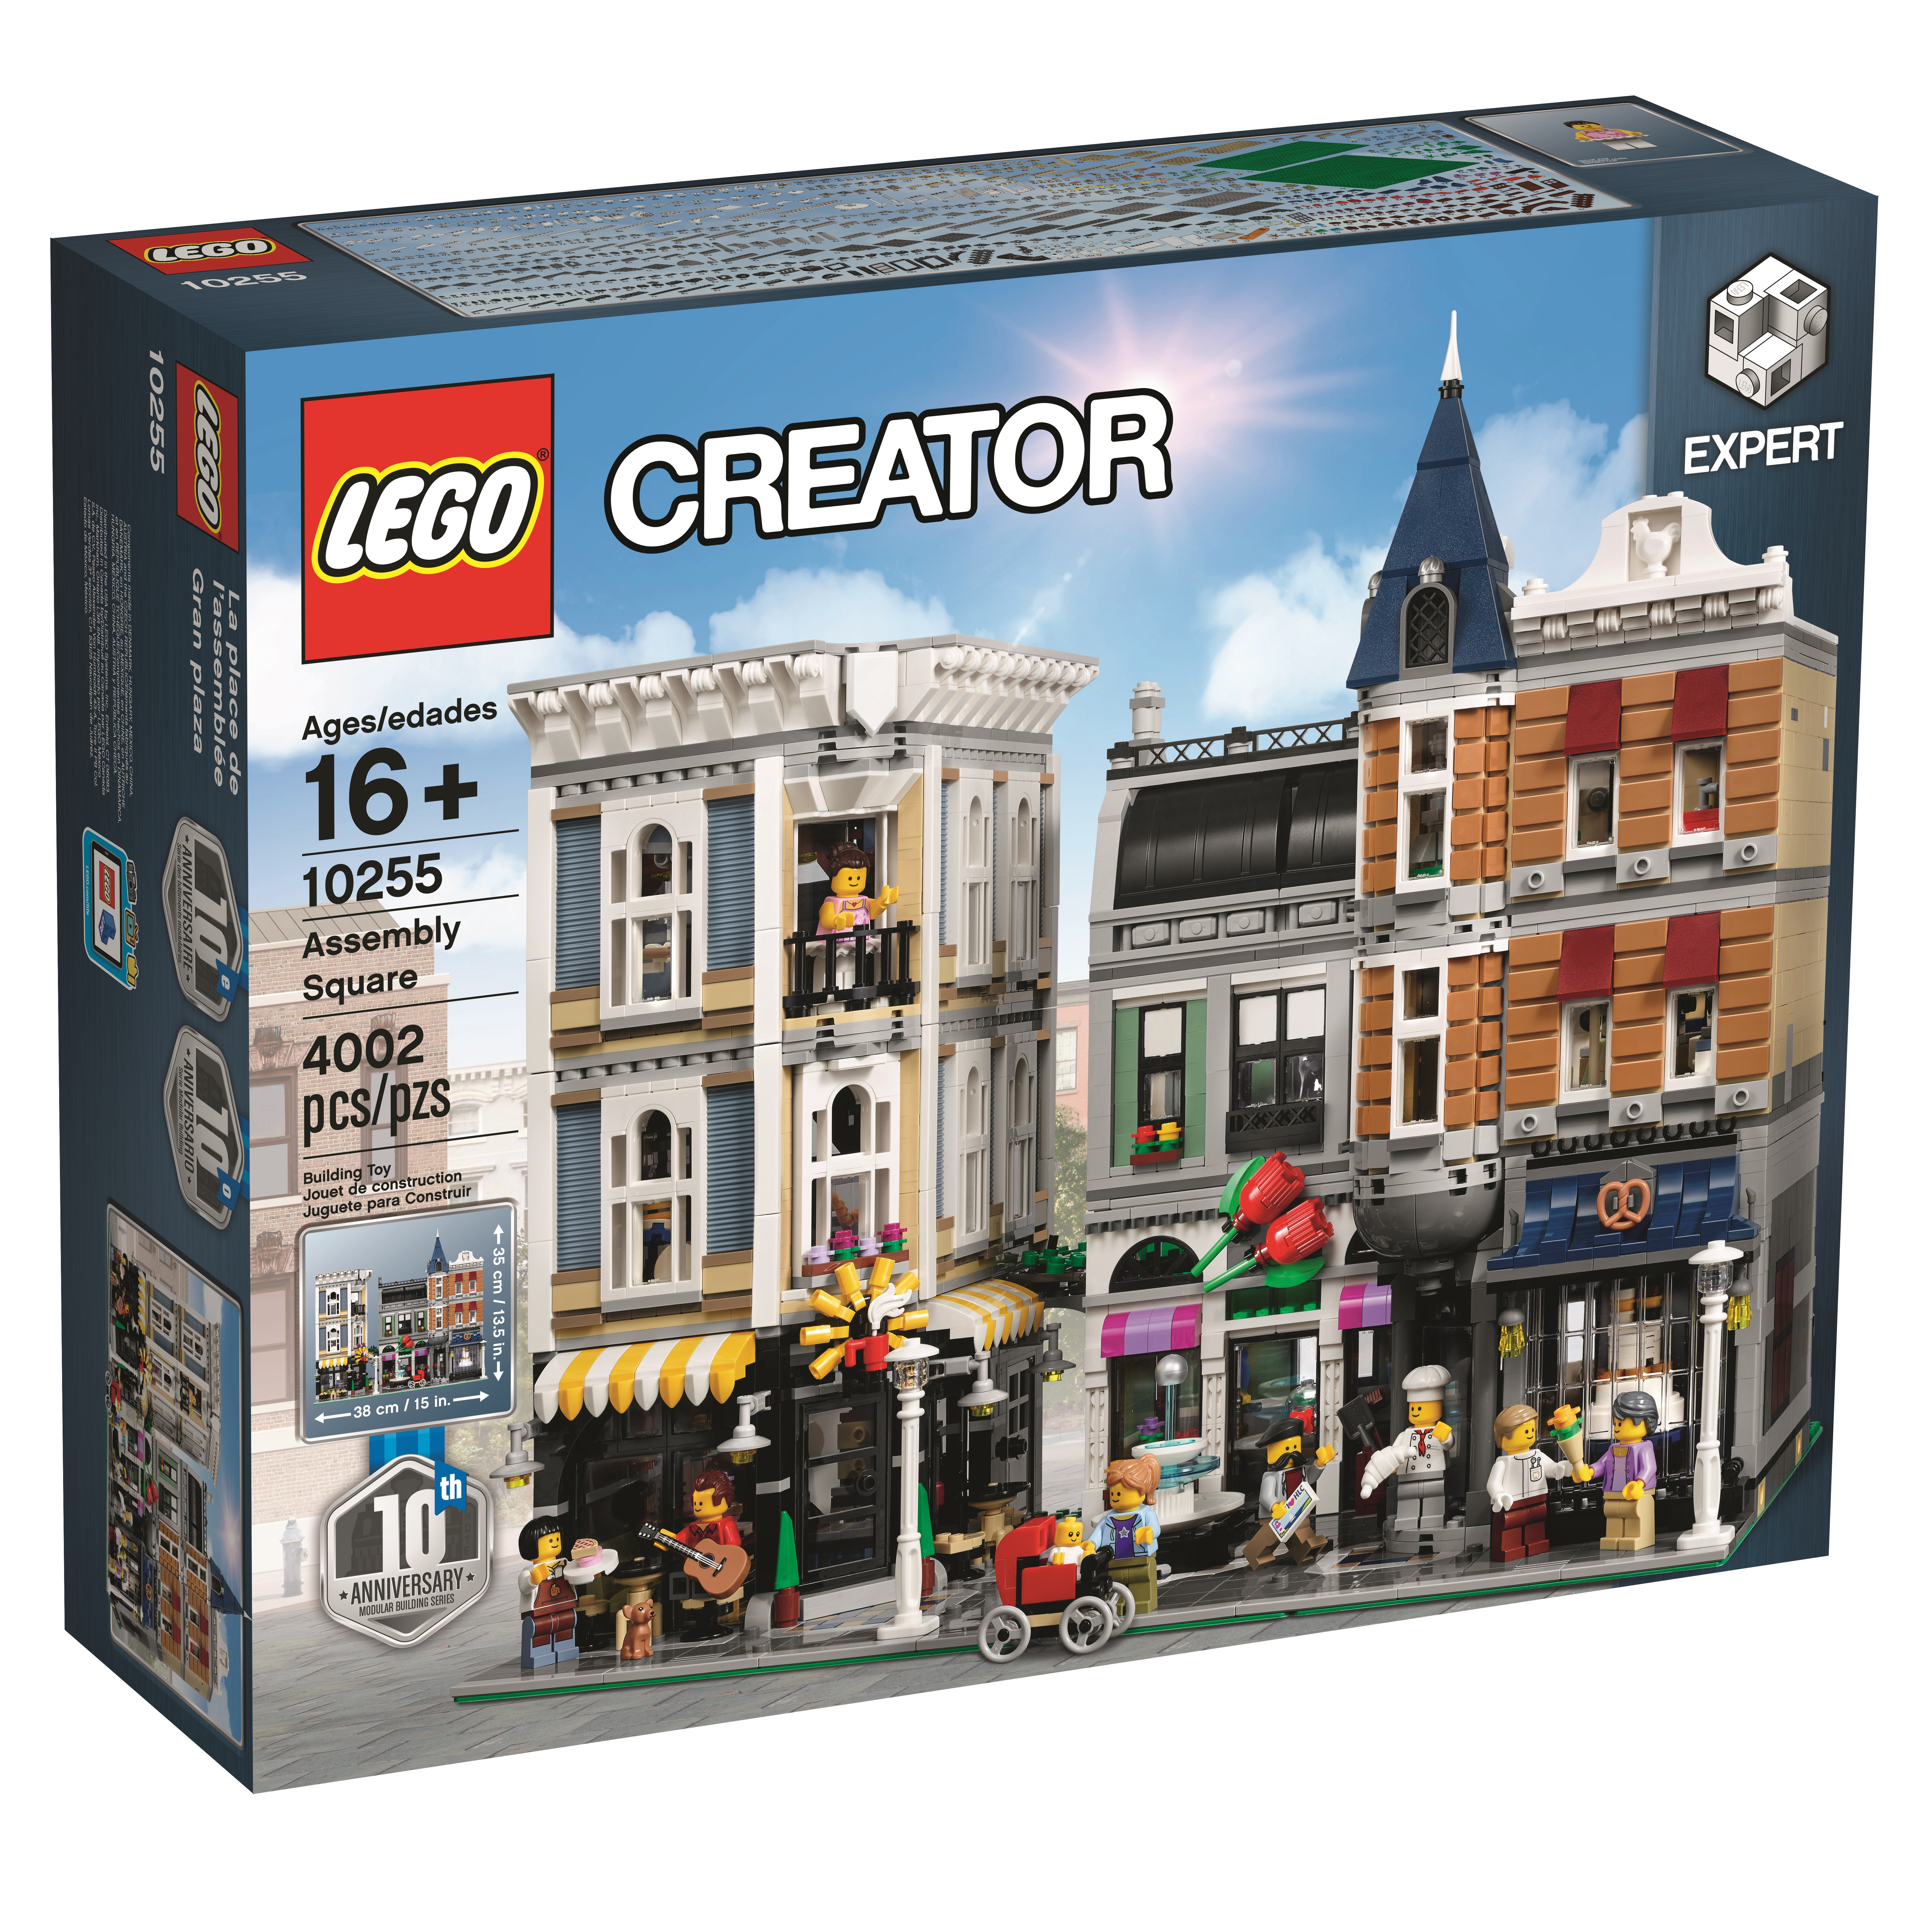 the 4 002 piece lego 10255 assembly square is a 10 year. Black Bedroom Furniture Sets. Home Design Ideas